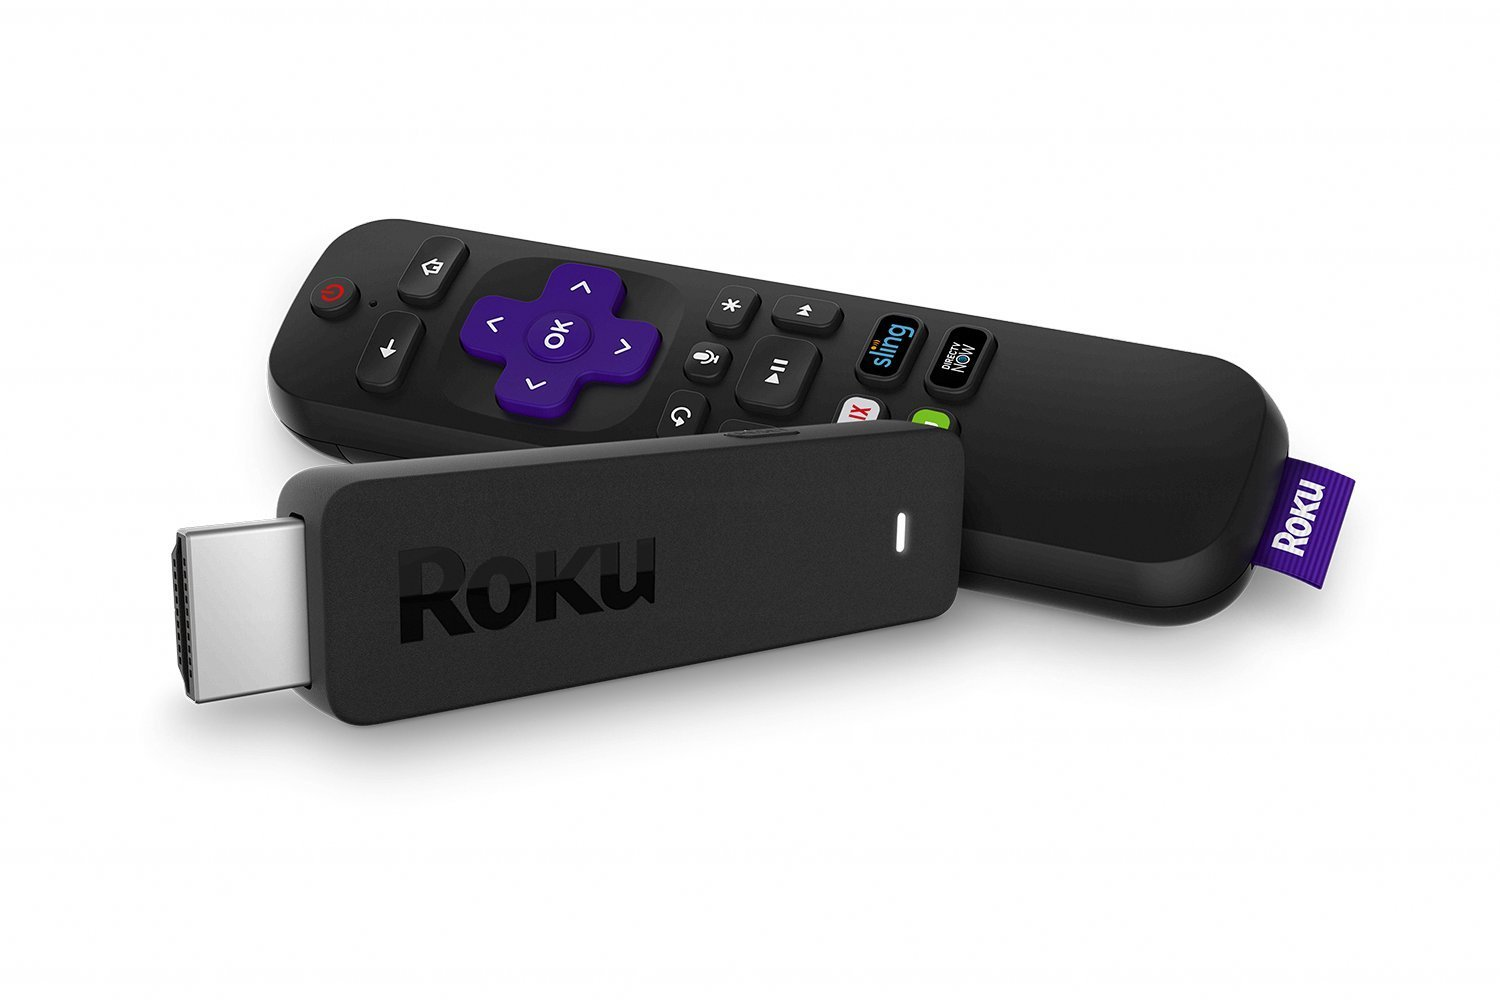 (Renewed) Roku Streaming Stick | Portable, Power-Packed Player with Voice Remote with TV Power and Volume (2017)